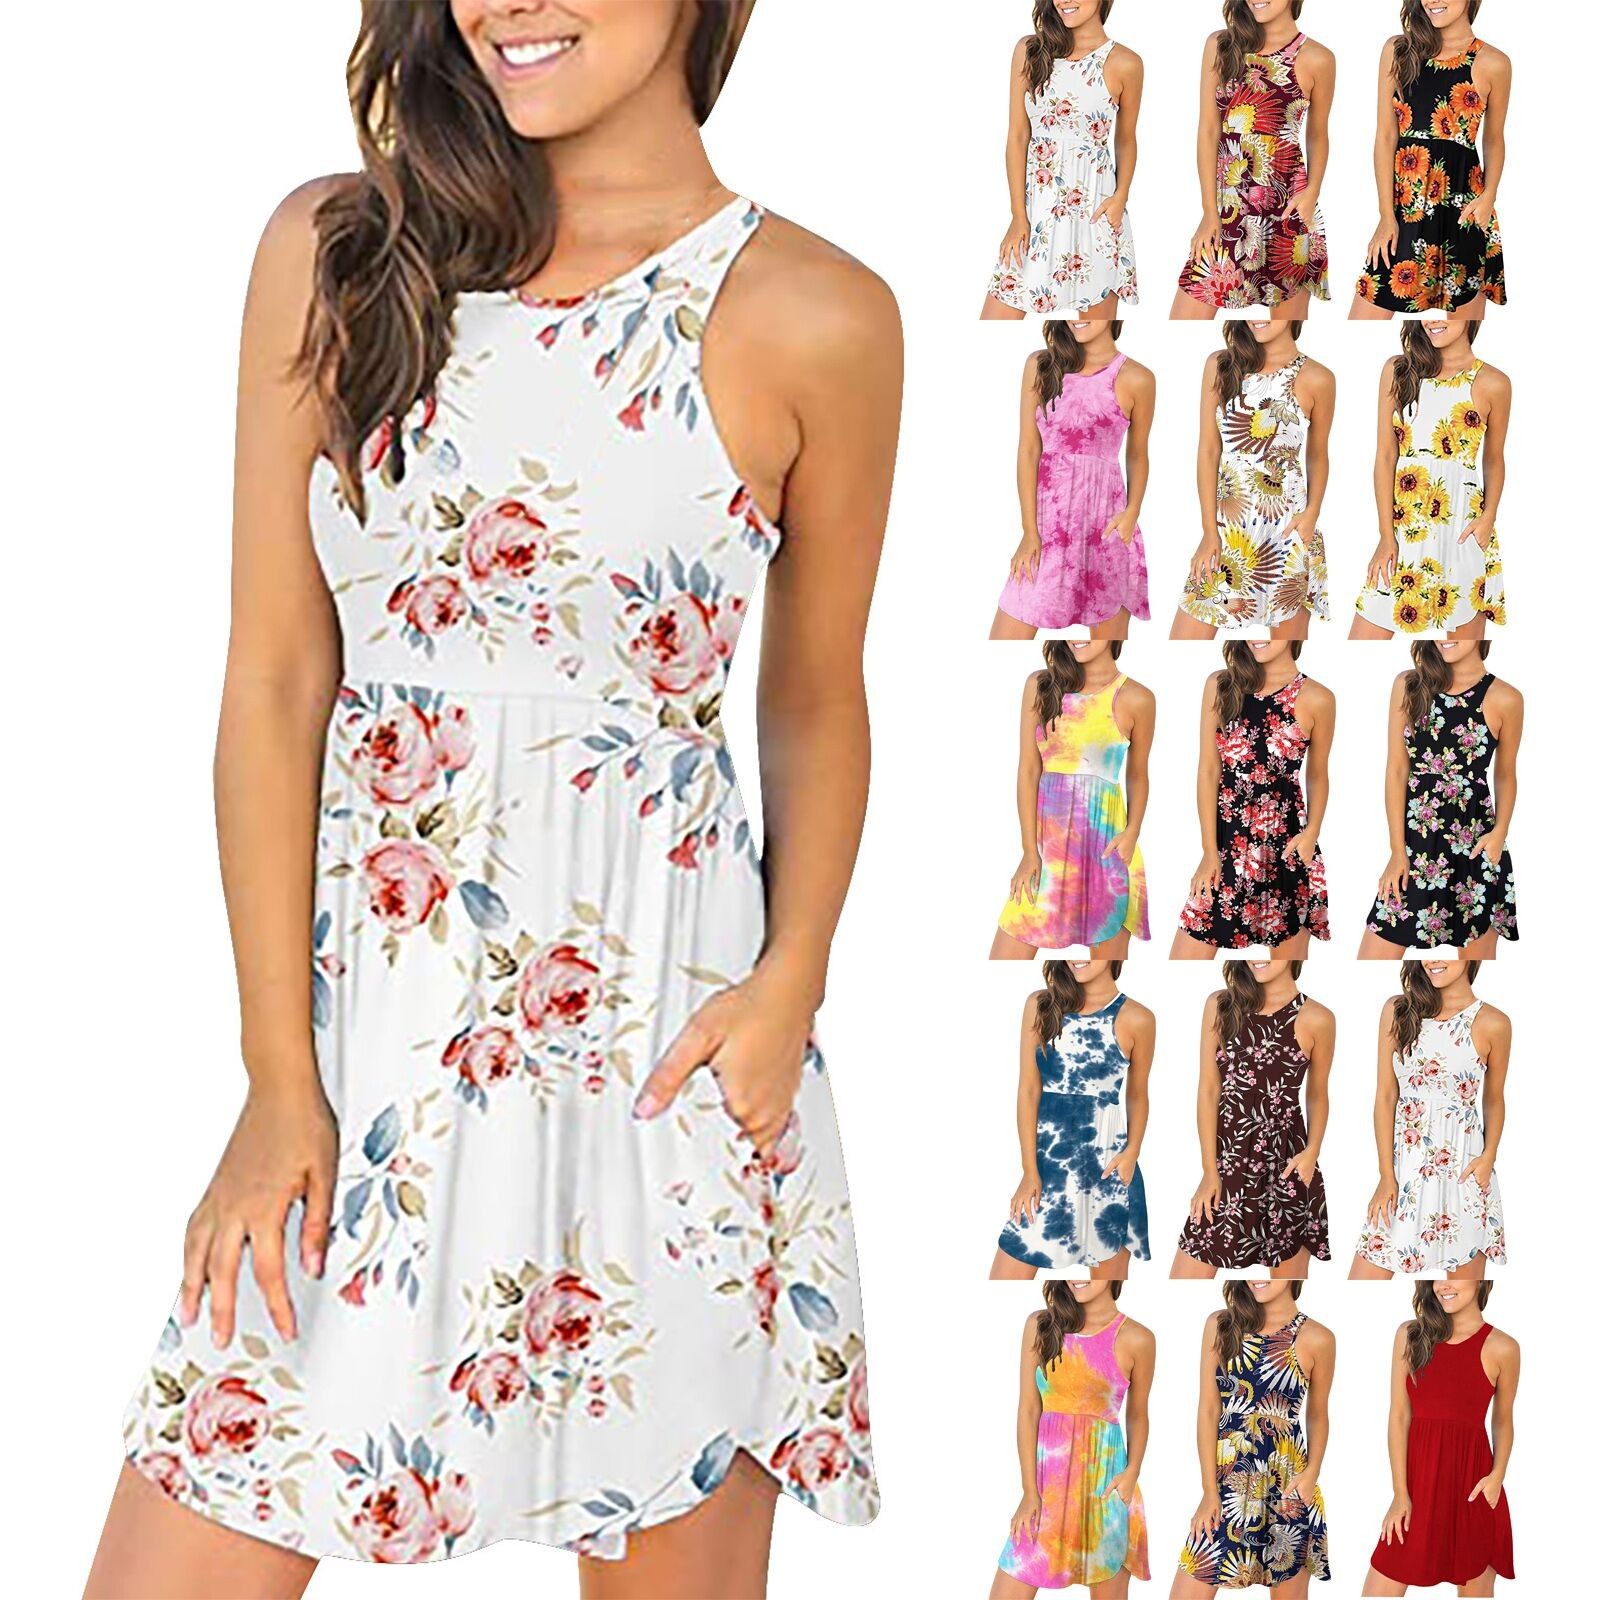 Women's Summer Sleeveless Casual Dresses Swing Cover Up Elastic Sundress with Pockets 1